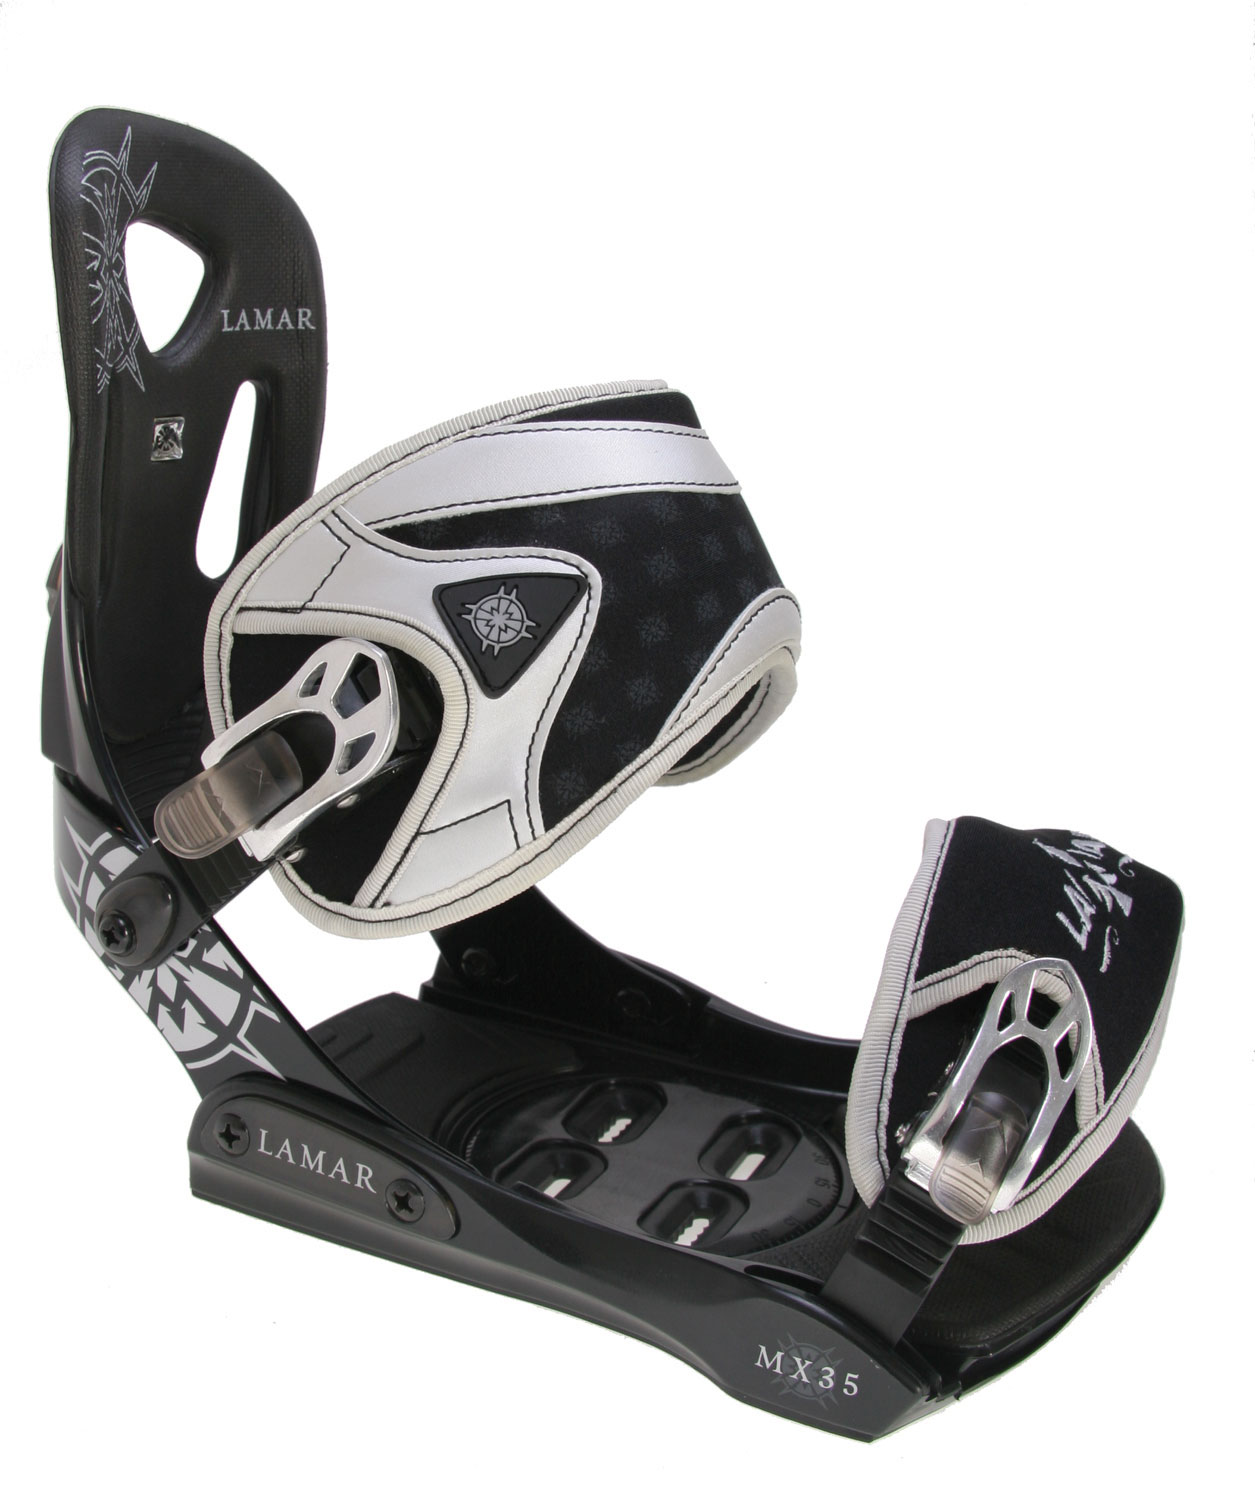 Snowboard The Lamar MX35's represent a great mid-range option in bindings. They will perform great on All Mountains and boast a fine Aluminum adjustable Heelcup. The construction of these bindings is simple but elegant. The baseplate is anatomically designed for added comfort, and the toe ramps are easily adjustable to dial in your fit. The Toe and Heel Ramp pads are molded EVA. These bindings are great way to add some style and comfort to your next ride.Key Features of the Lamar MX35 Silver Snowboard Bindings: All-Mountain Performance Aluminum Adjustable Heelcup Plastic Anatomical Baseplate Adjustable Toe Ramps Molded EVA Toe and Heel Ramp Pads - $52.76